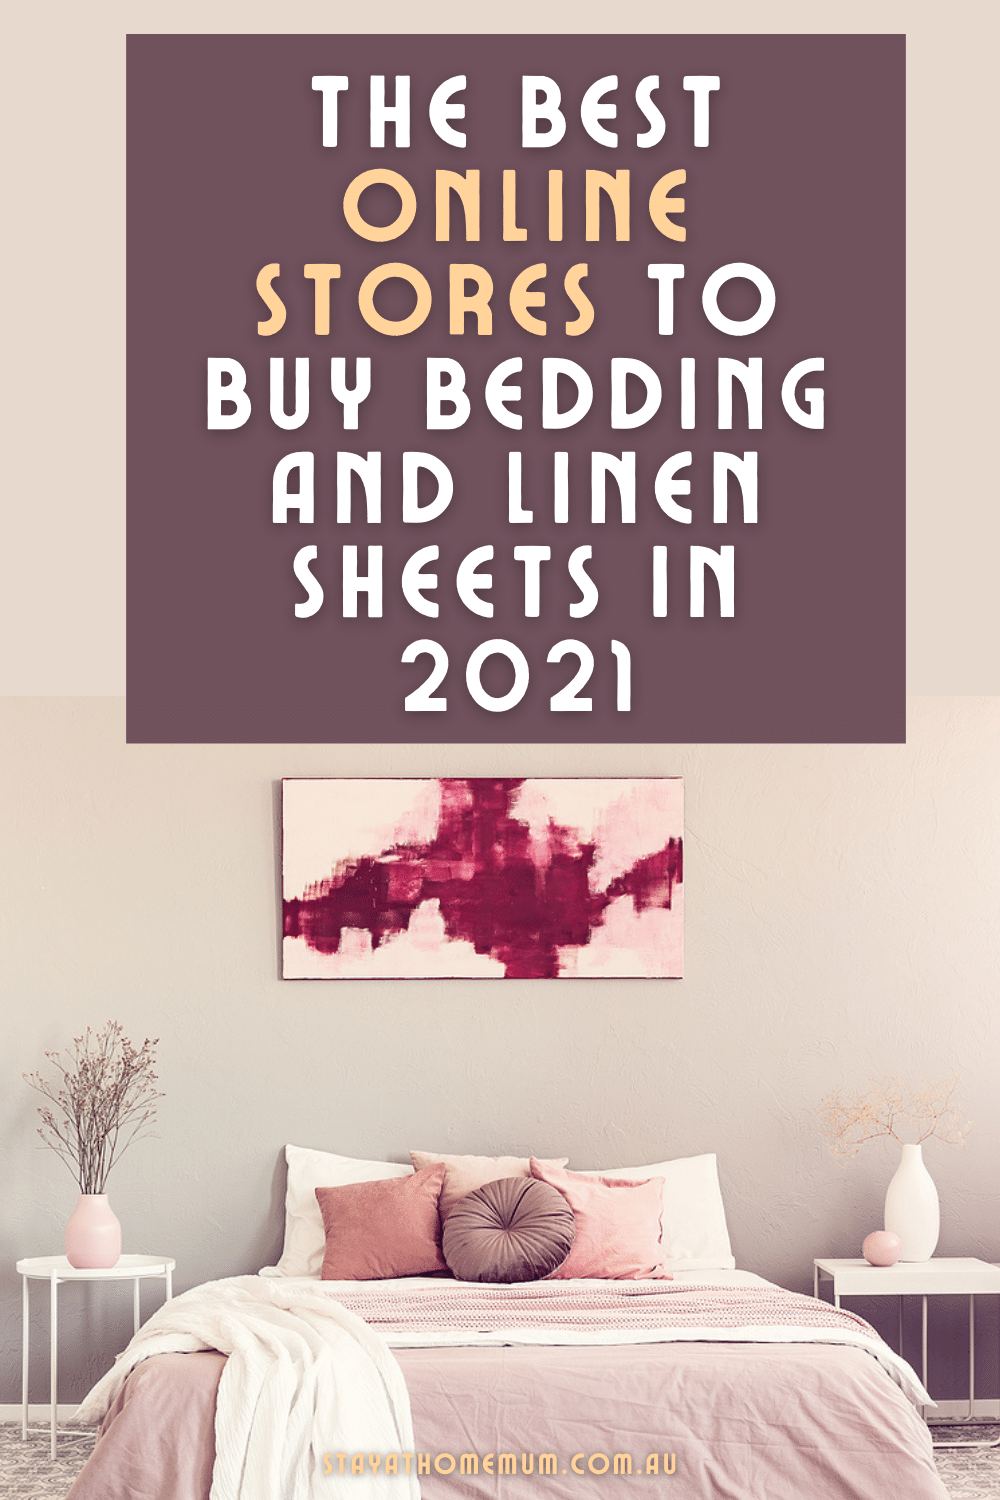 The Best Online Stores To Buy Bedding and Linen Sheets in 2021   Stay at Home Mum.com.au